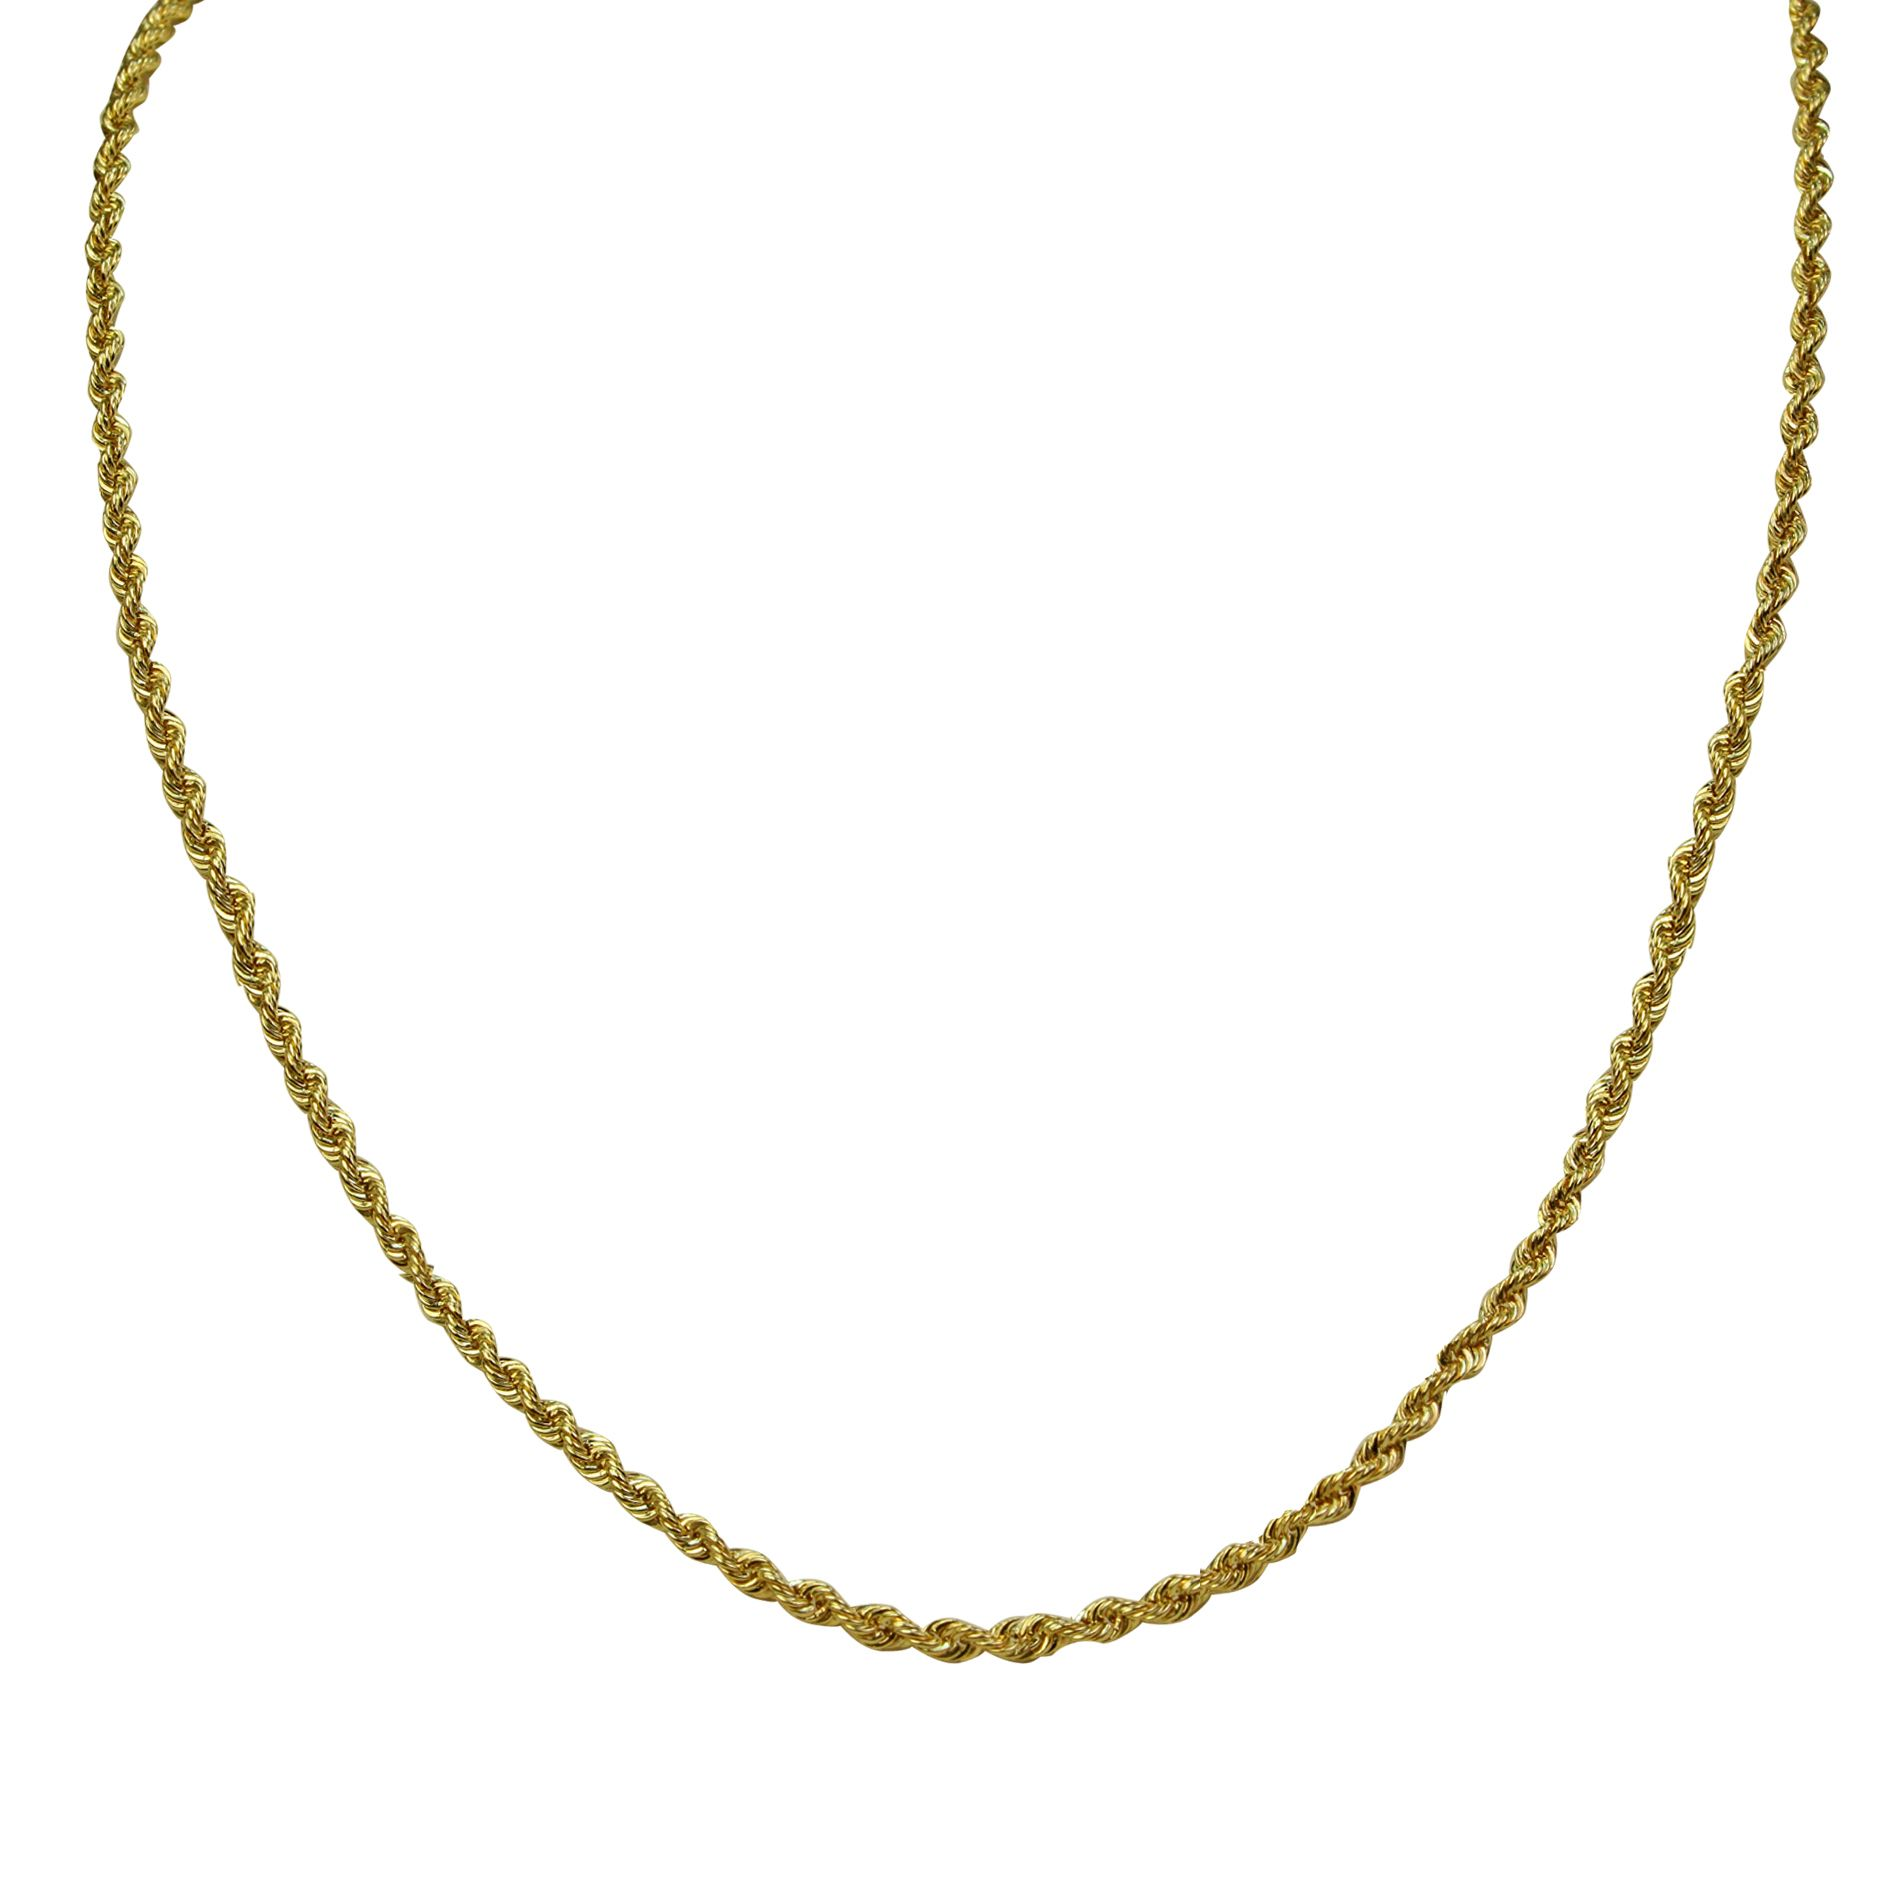 14Kt Rope Chain                                                                                                                  at mygofer.com